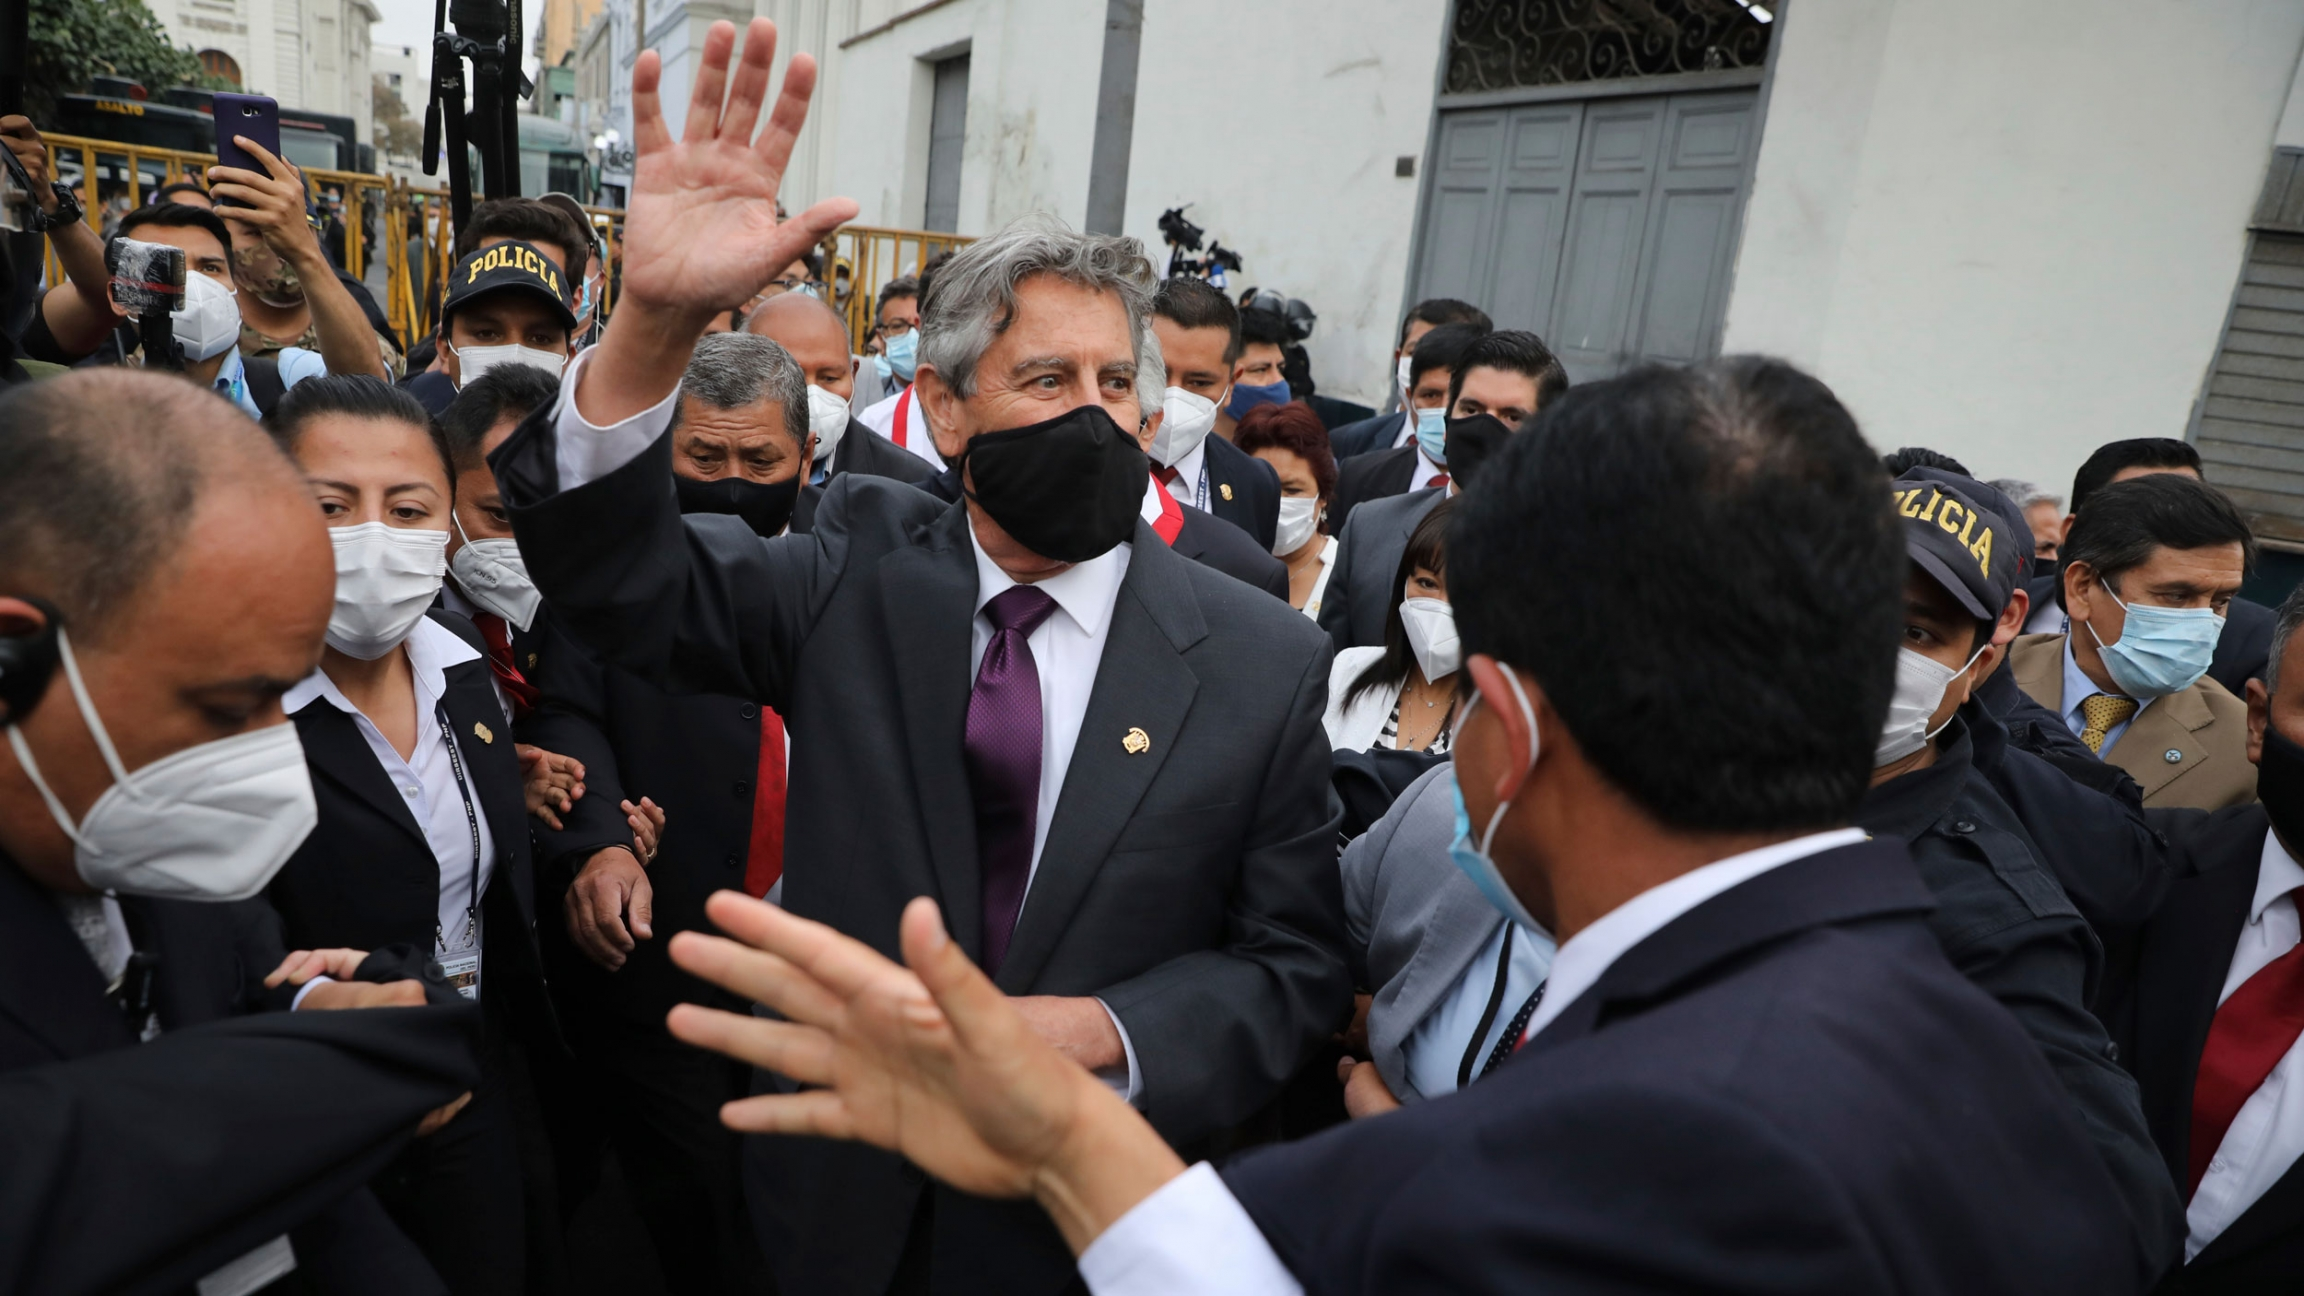 Peru's new President Francisco Sagasti is shown among a large crowd of people while wearing a face mask and waving.